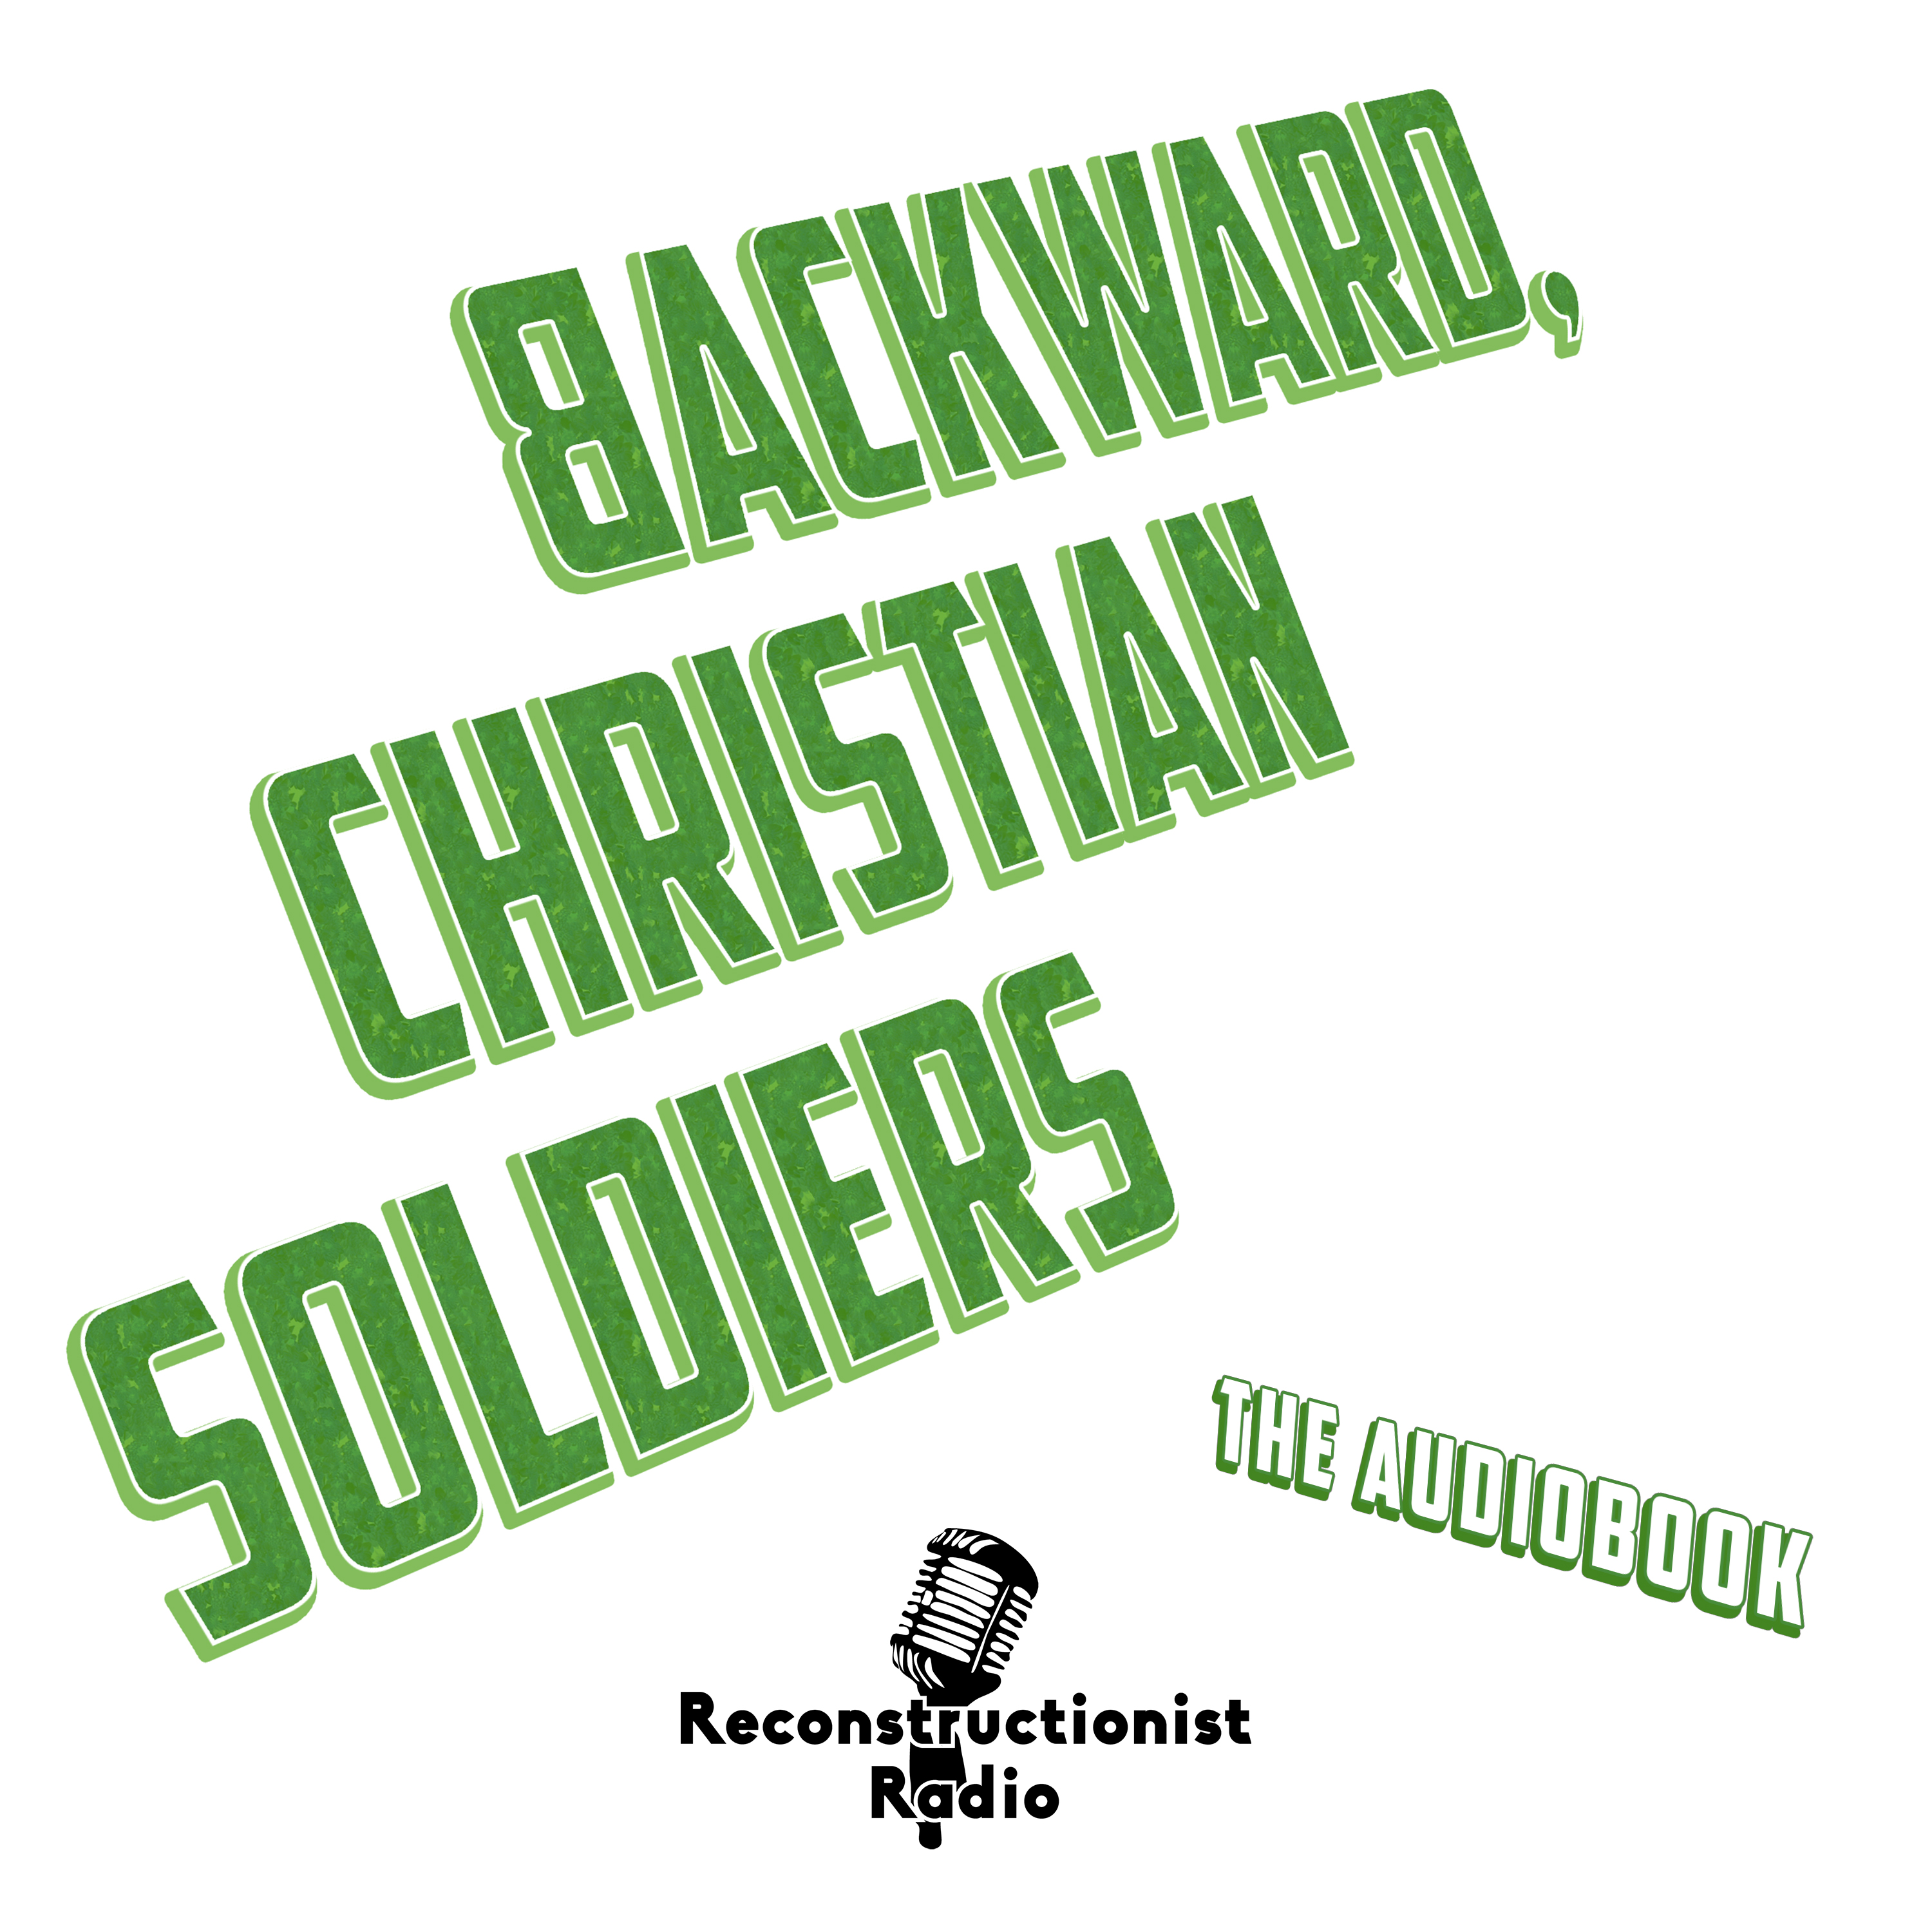 Backward Christian Soldiers - An Action Manual for Christian Reconstruction